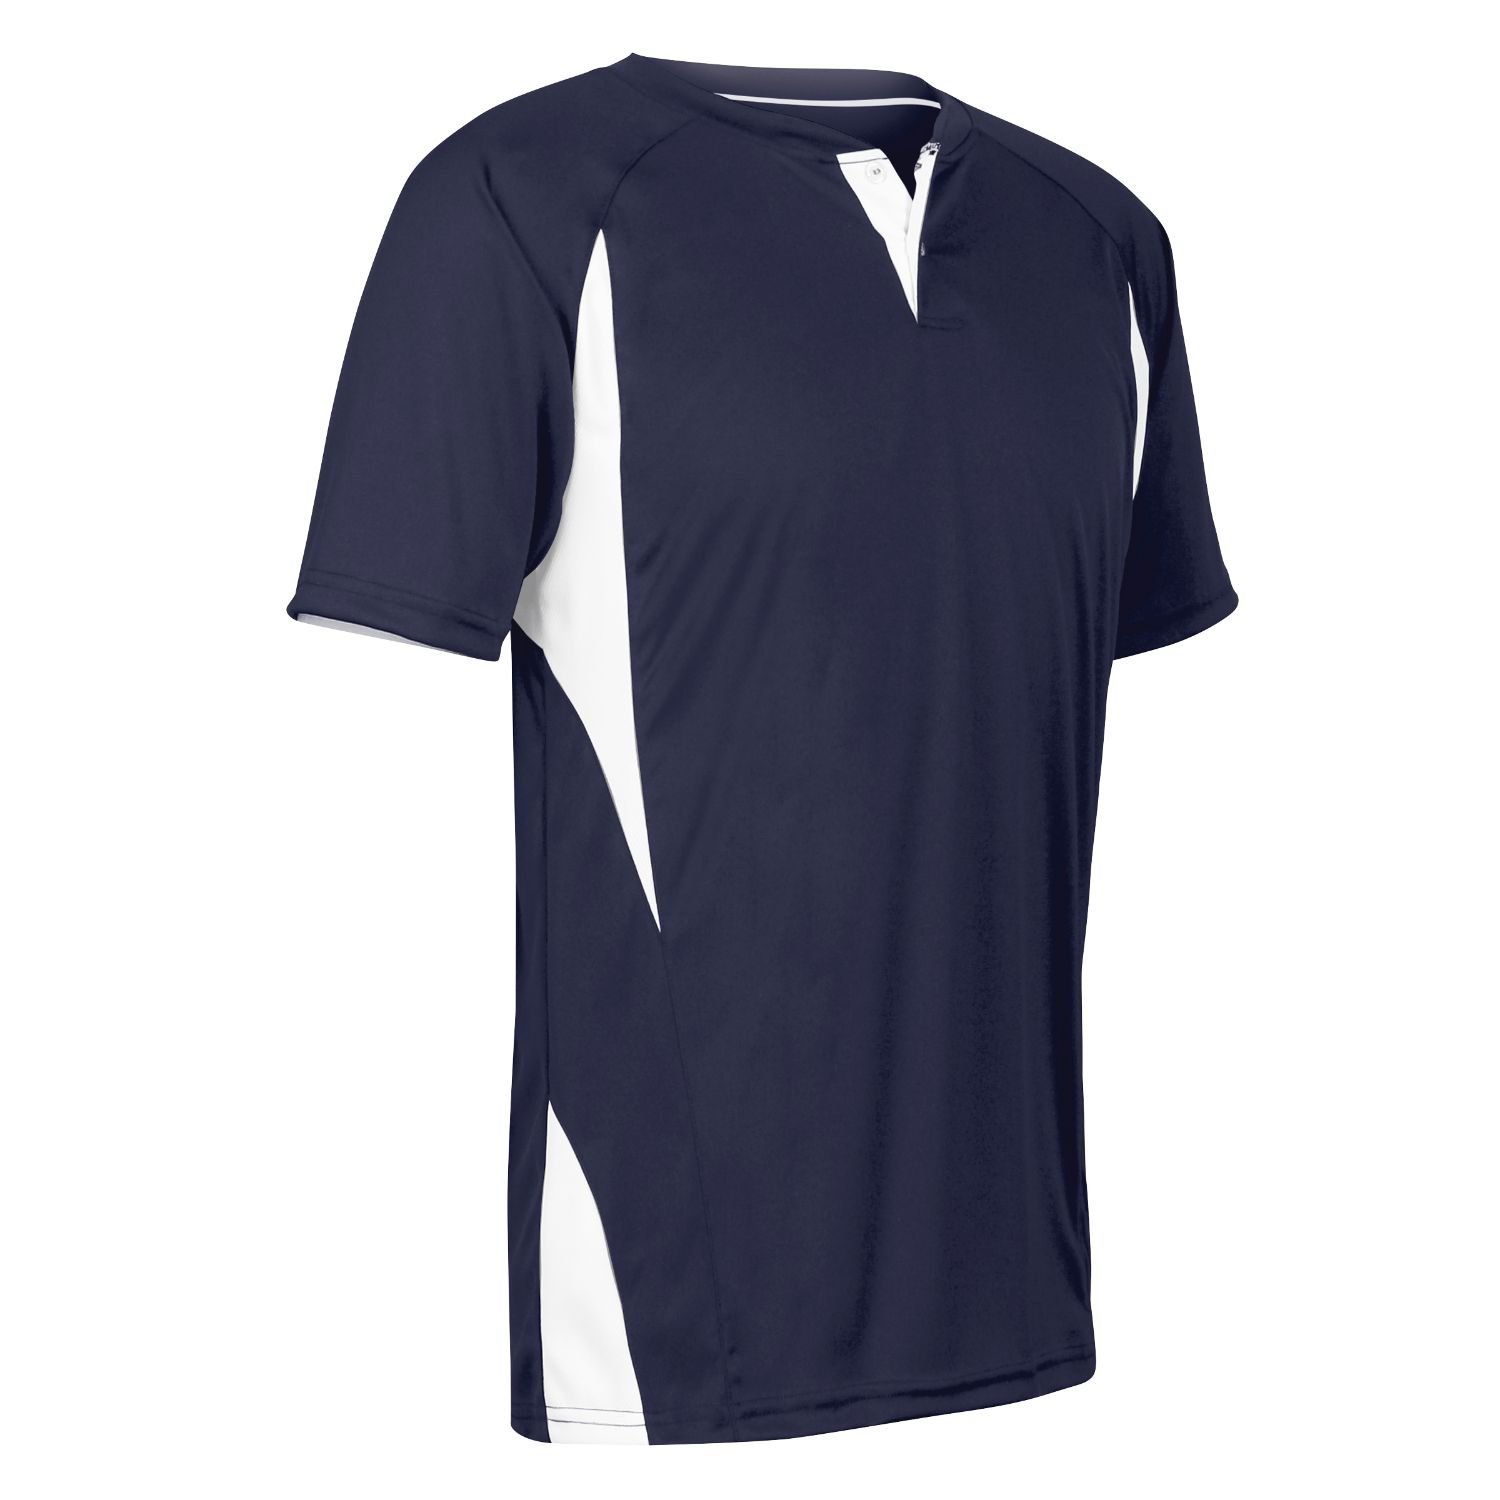 Champro Adult 2 Button Wild Card Jersey Navy White Small